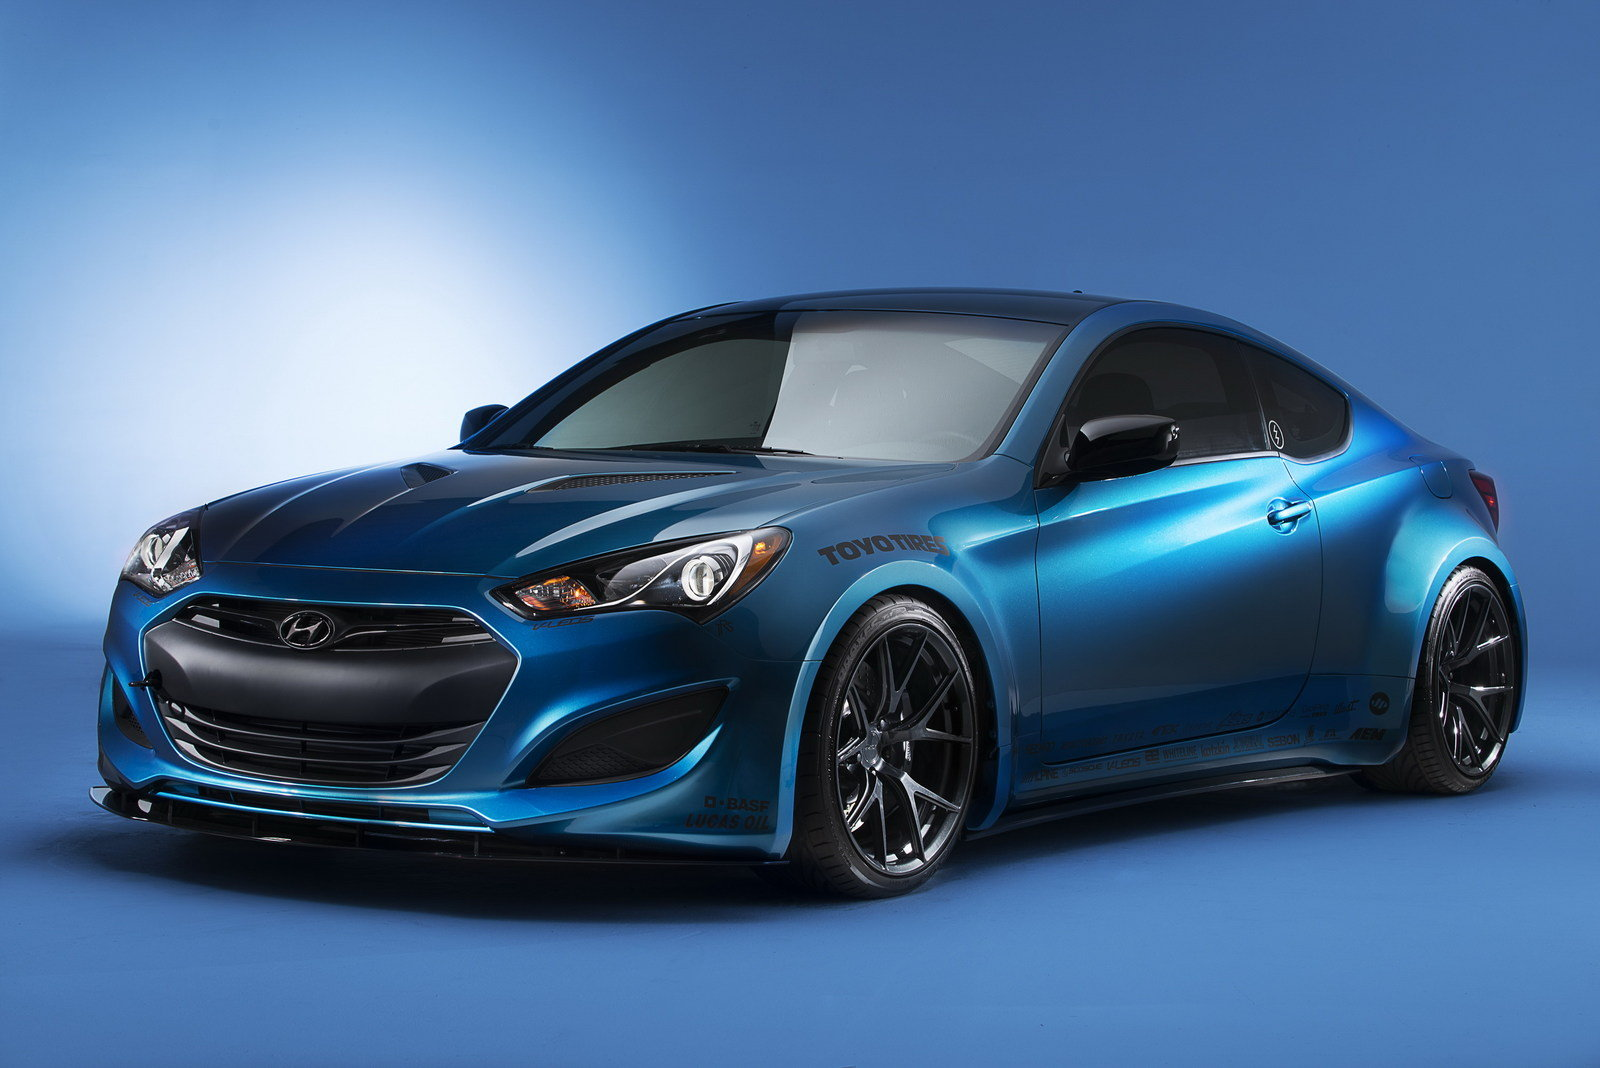 2013 hyundai genesis coupe atlantis blue review top speed. Black Bedroom Furniture Sets. Home Design Ideas